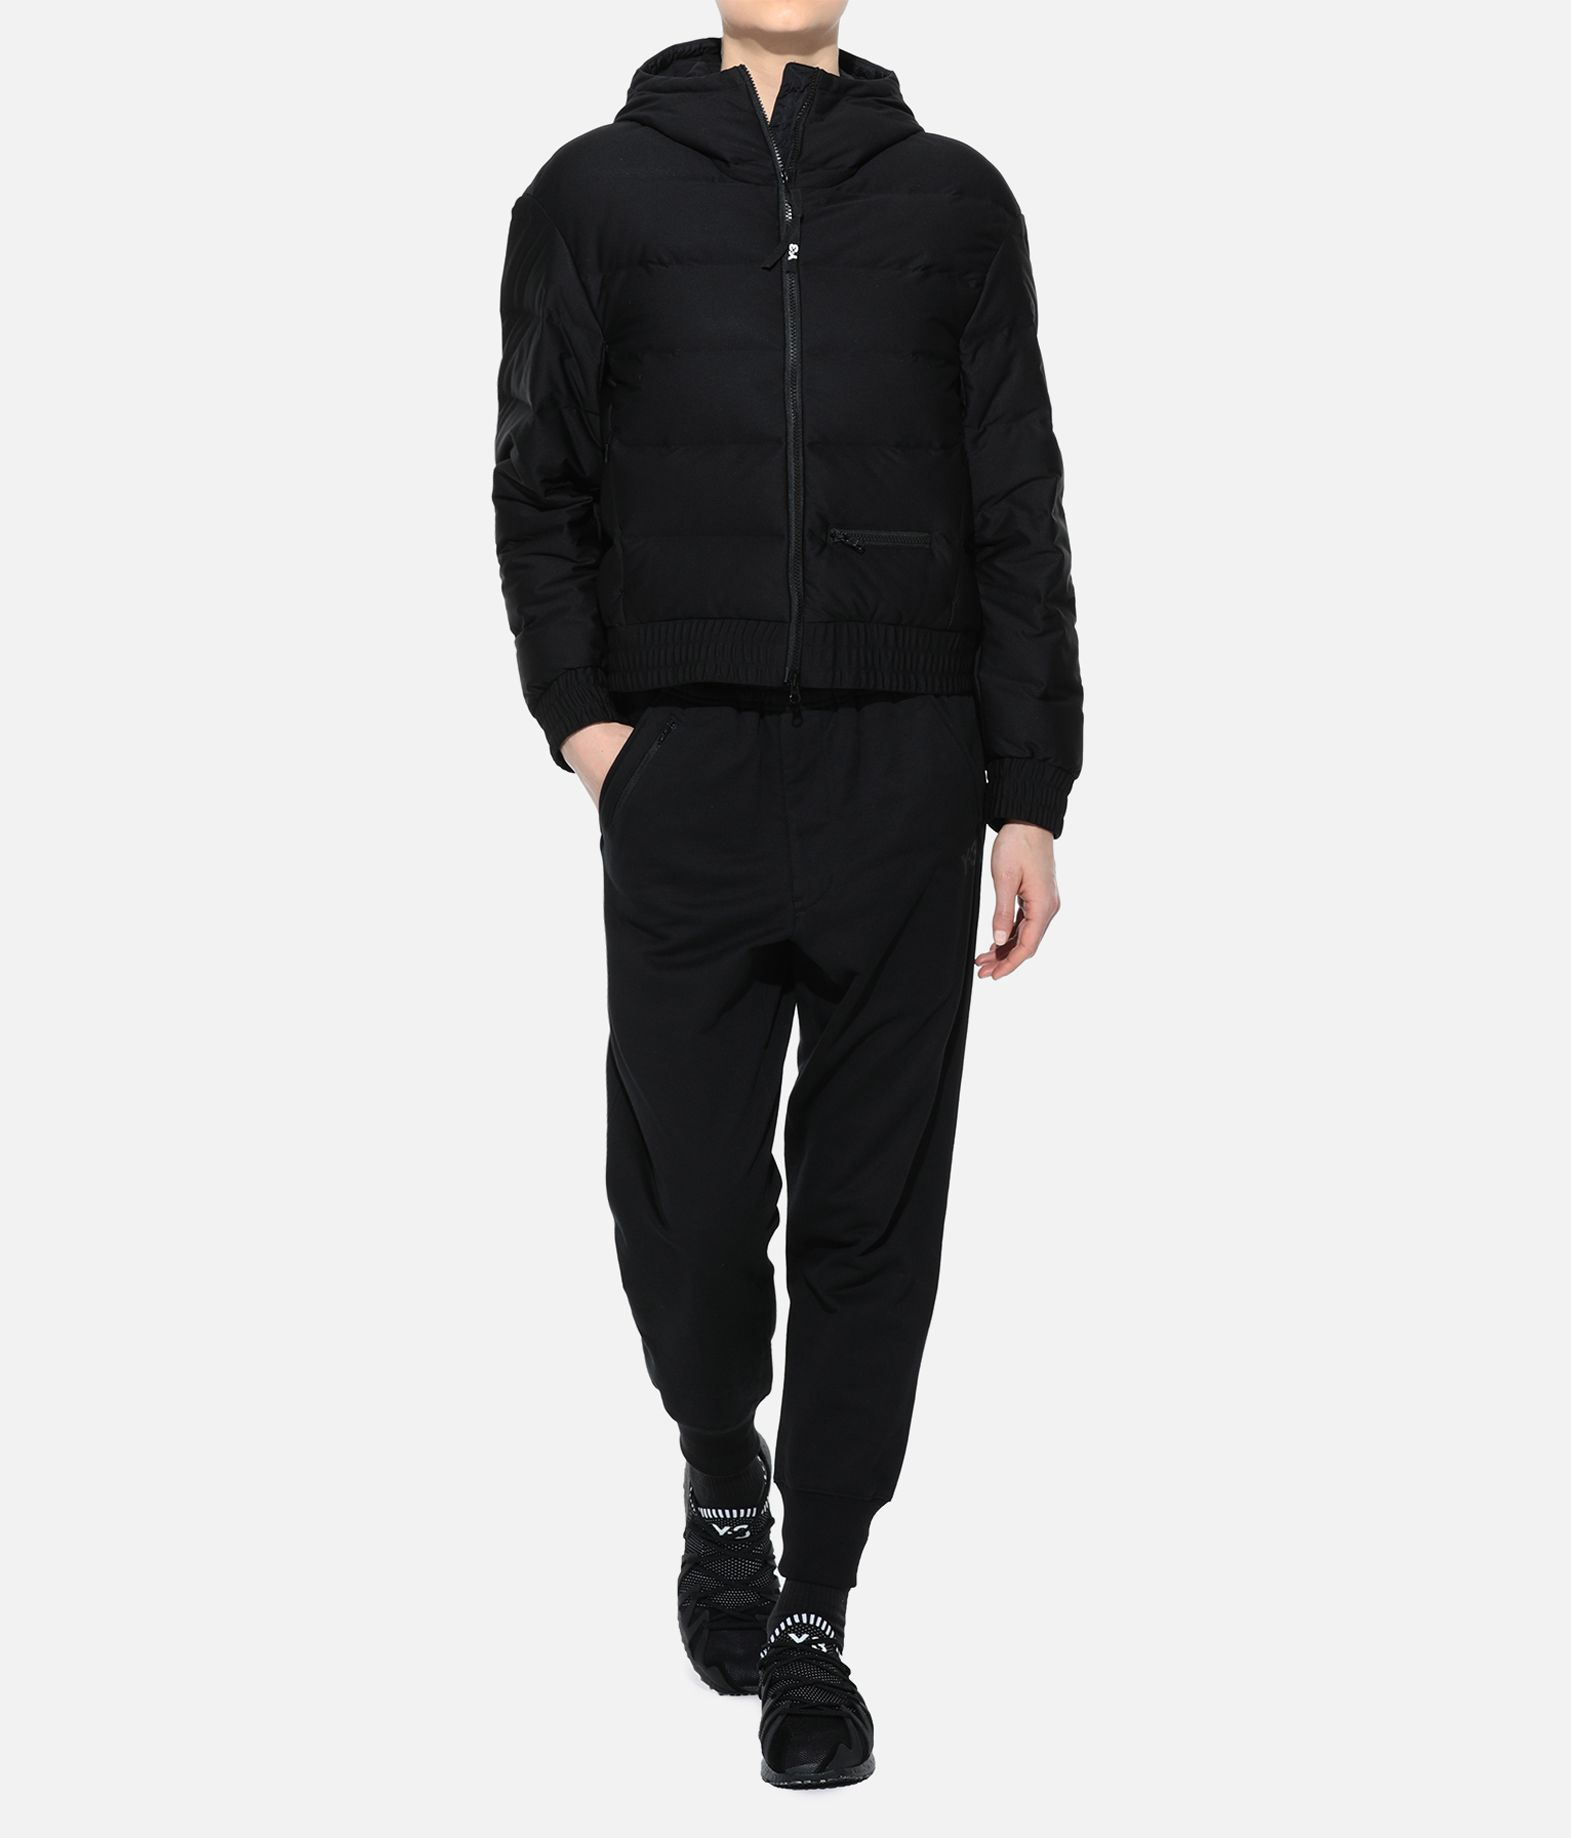 Y-3 Y-3 Seamless Down Hooded Jacket Jacket Woman a